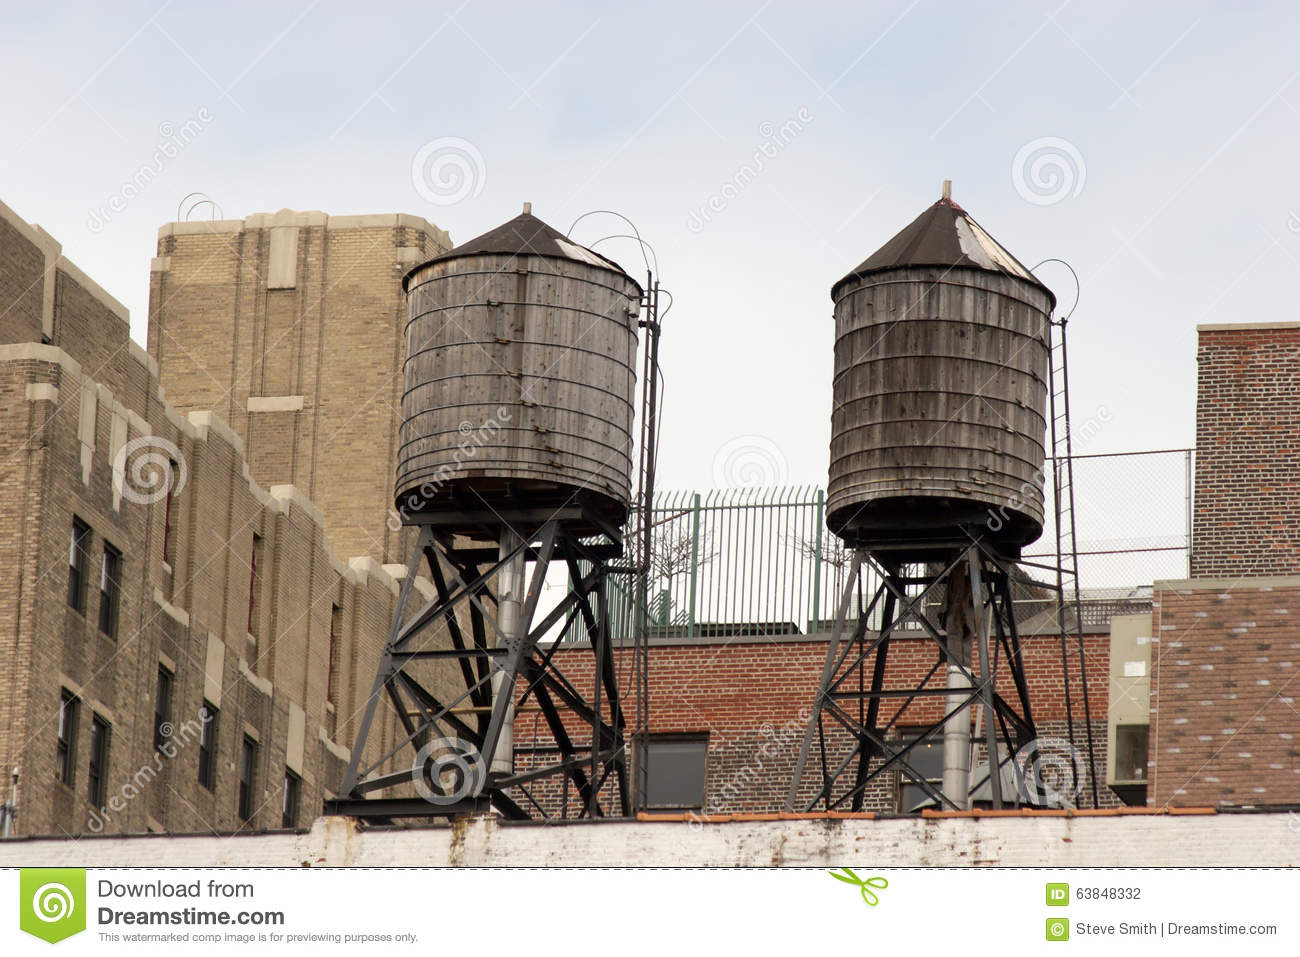 Two Old Style Wooden Water Tanks On Rooftop Greenwich